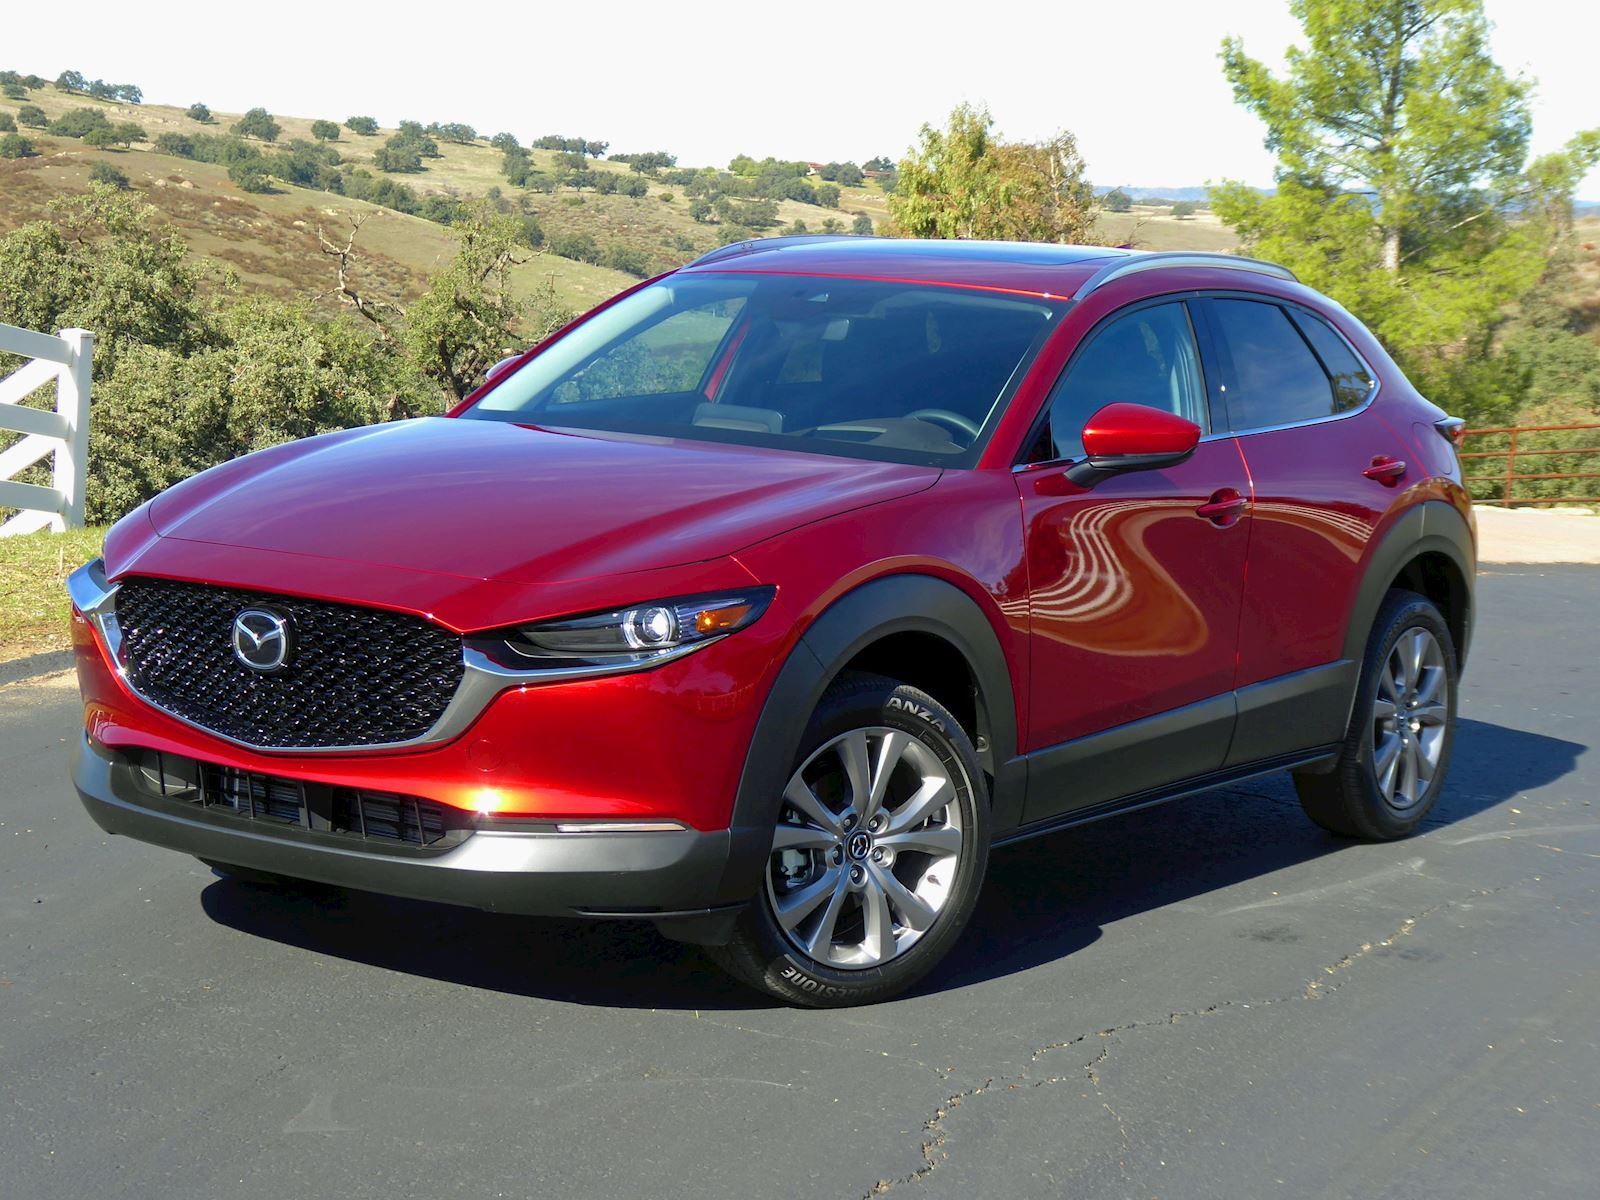 2020 Mazda CX-30 front and side view